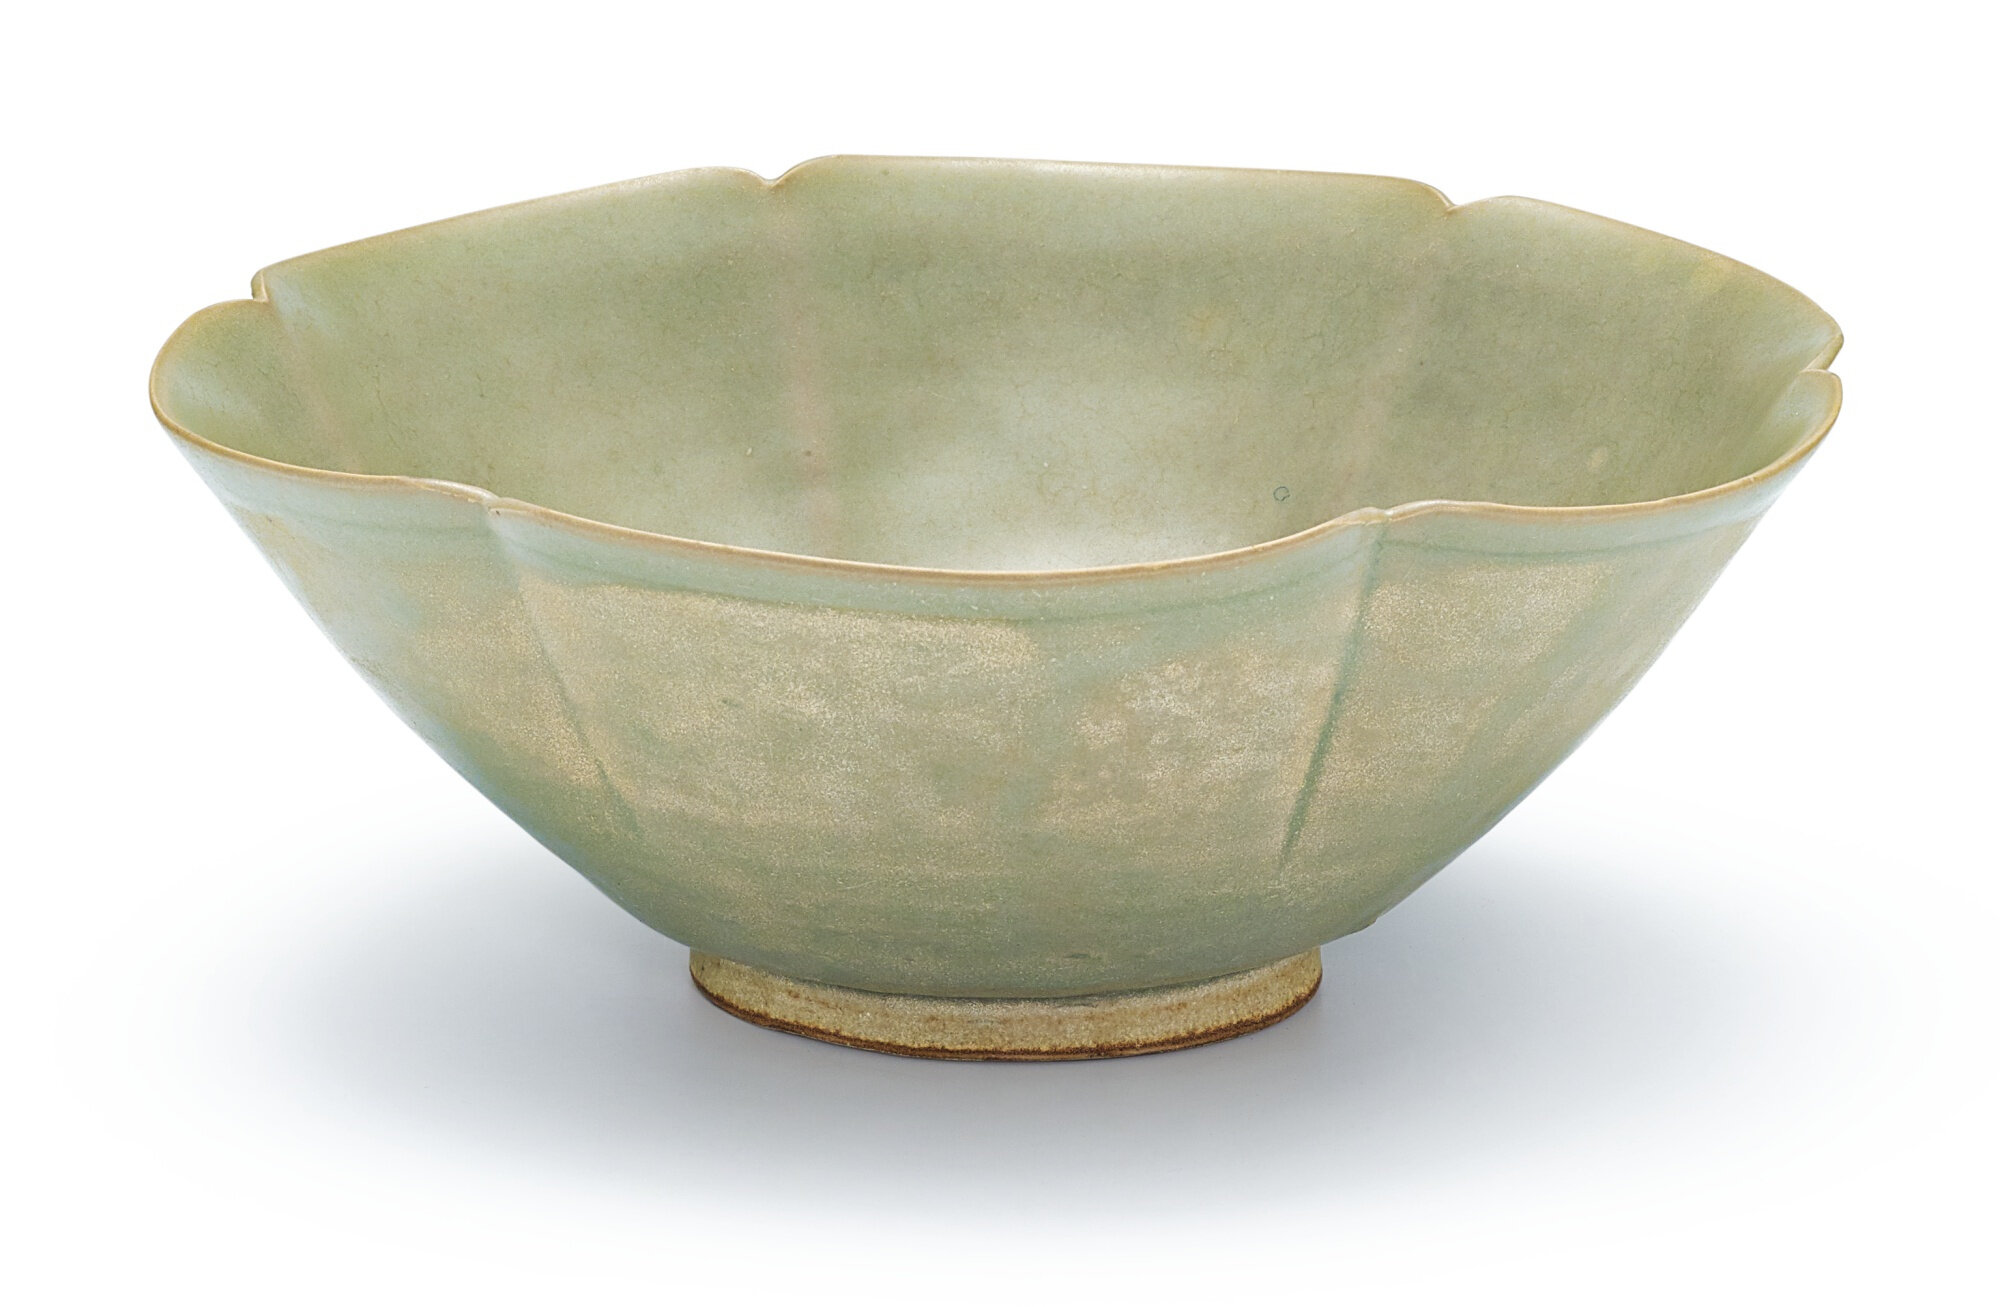 A Yue celadon lobed bowl, Five dynasties (907-960)